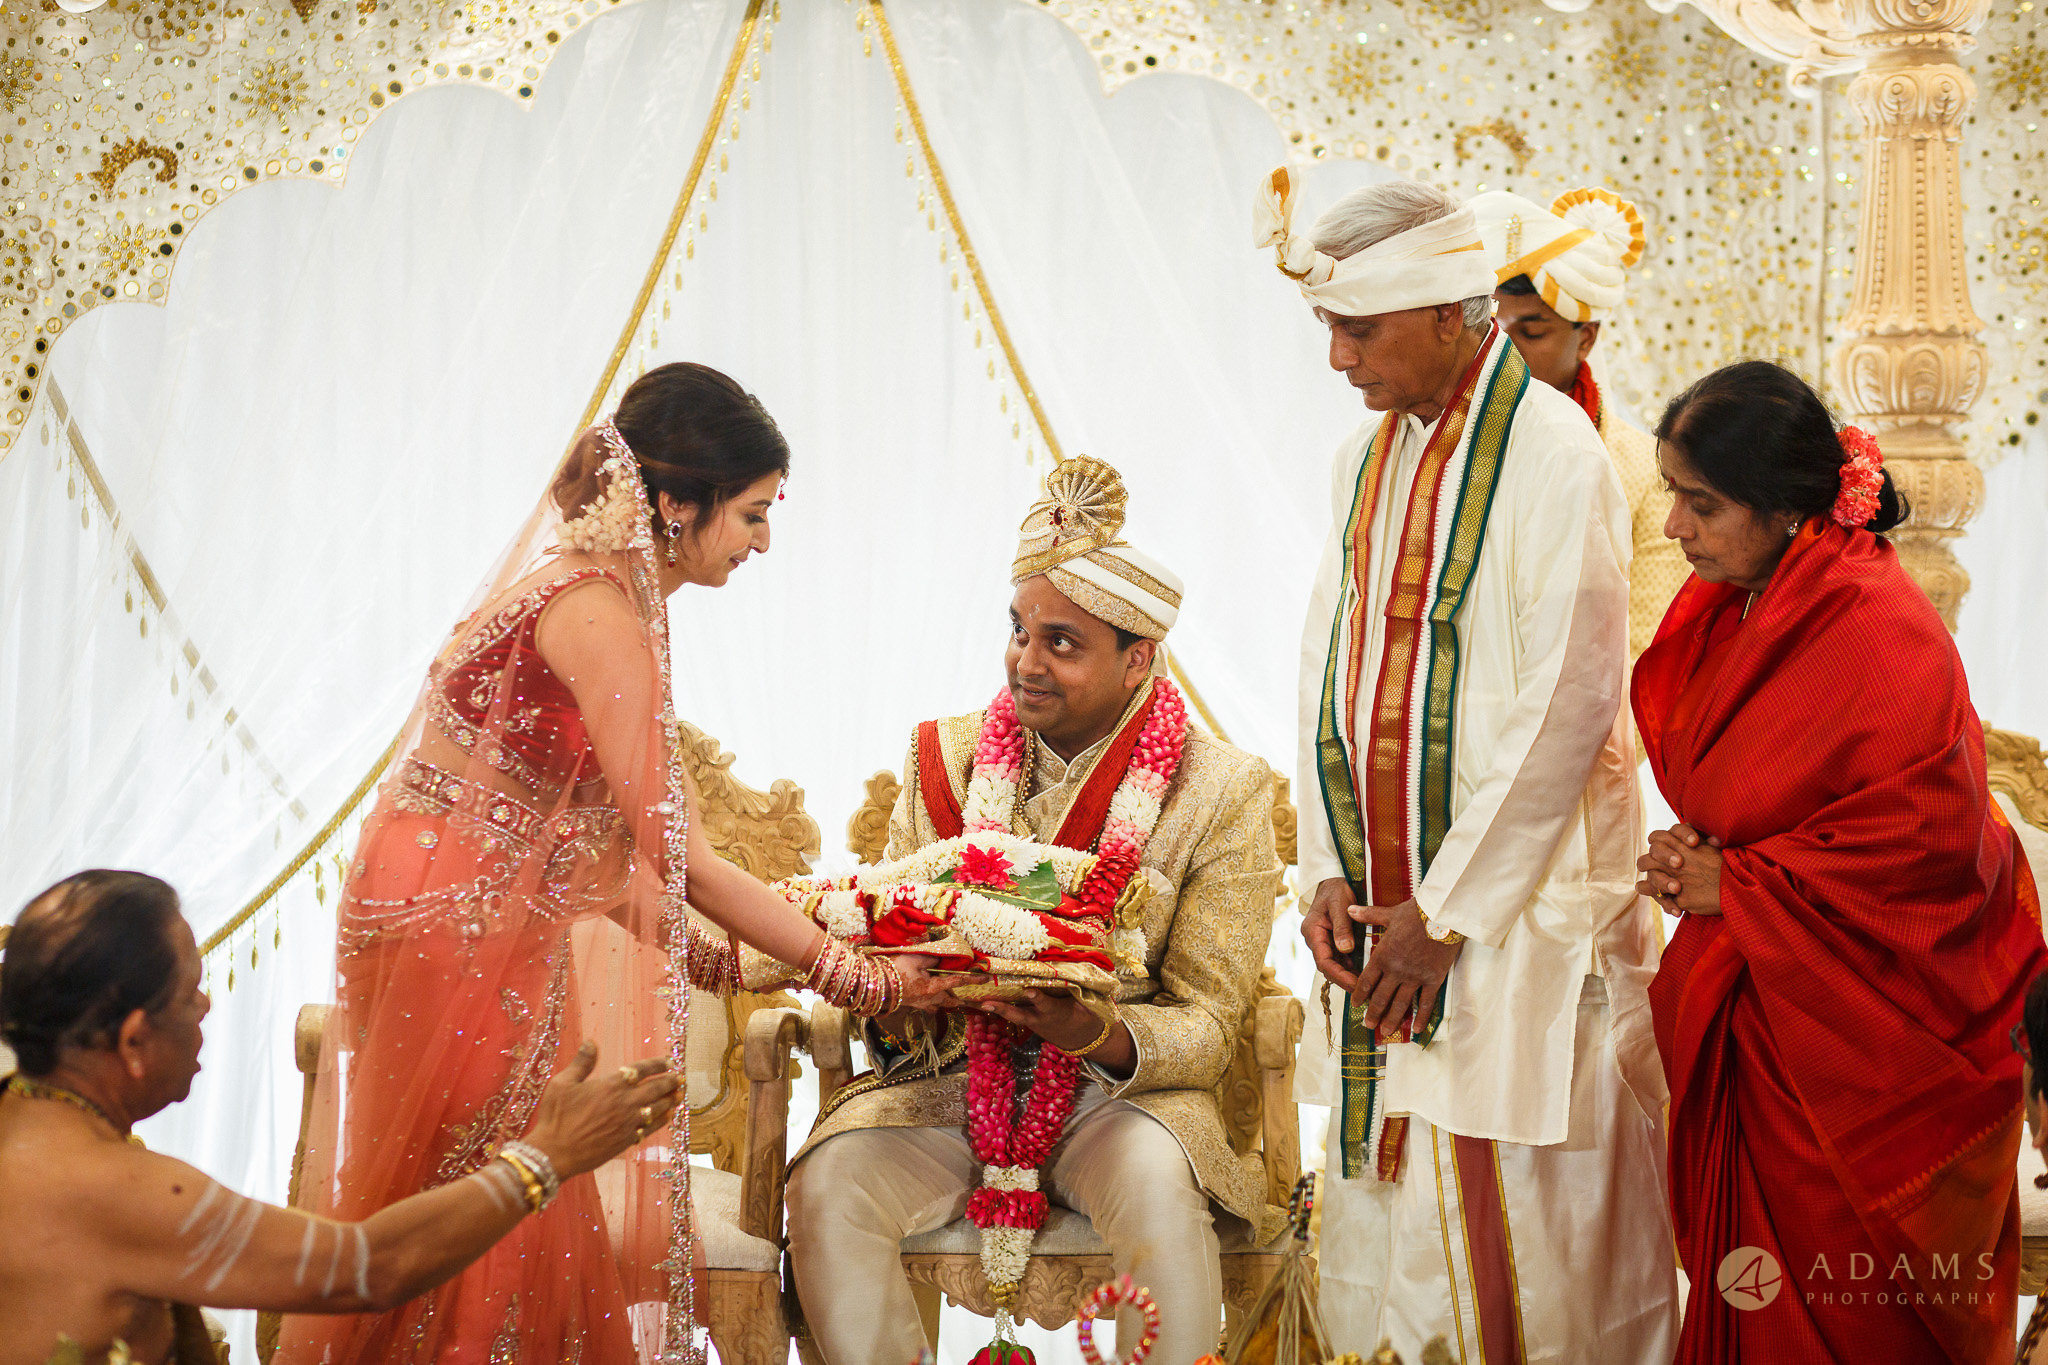 Bride gives present to the groom